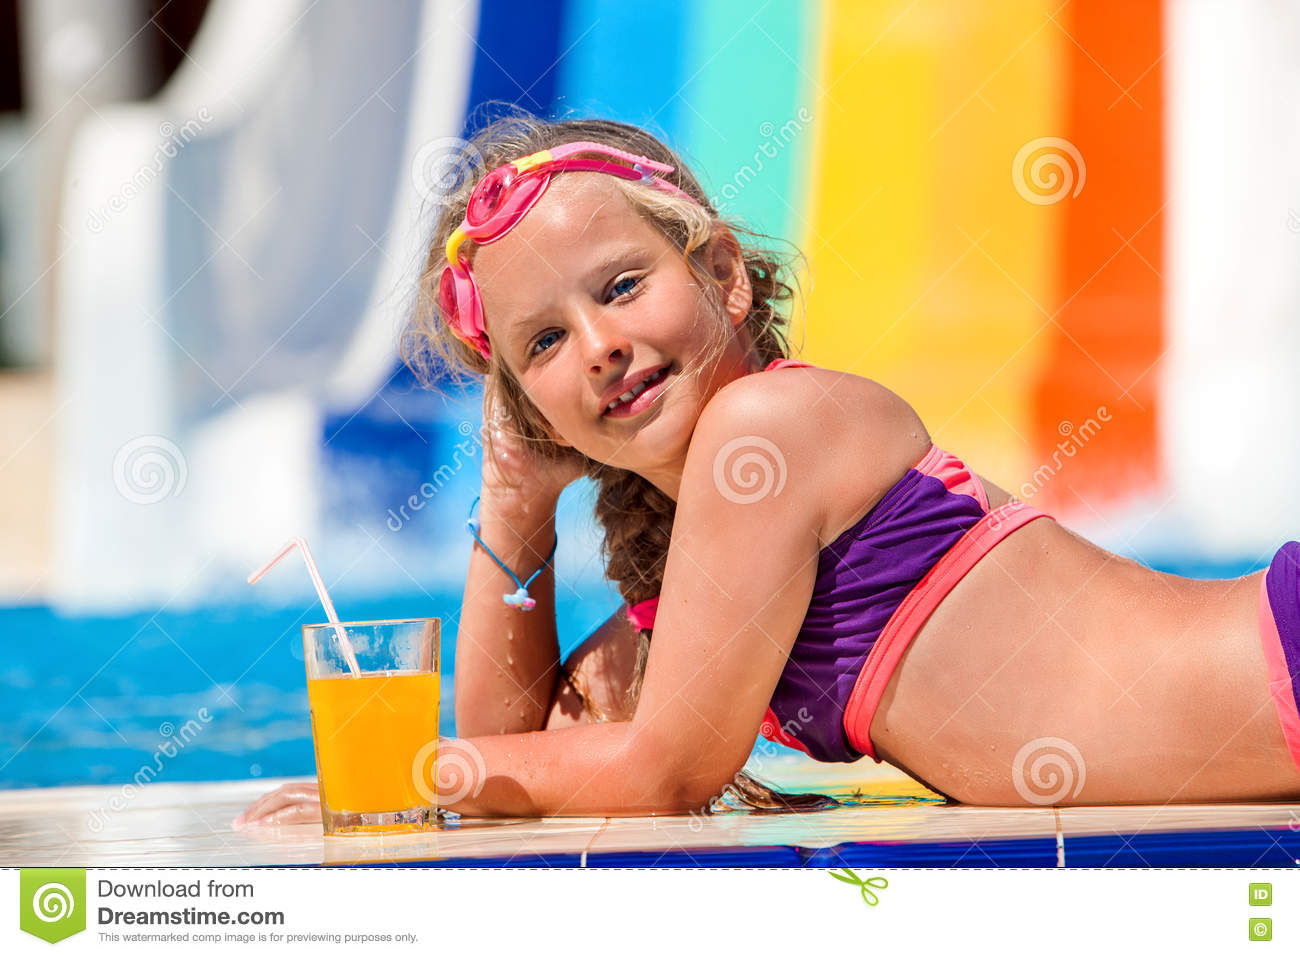 Child on water slide at aquapark drinking cold squeezed orange juice stock photo image 72616018 How to make swimming pool water drinkable